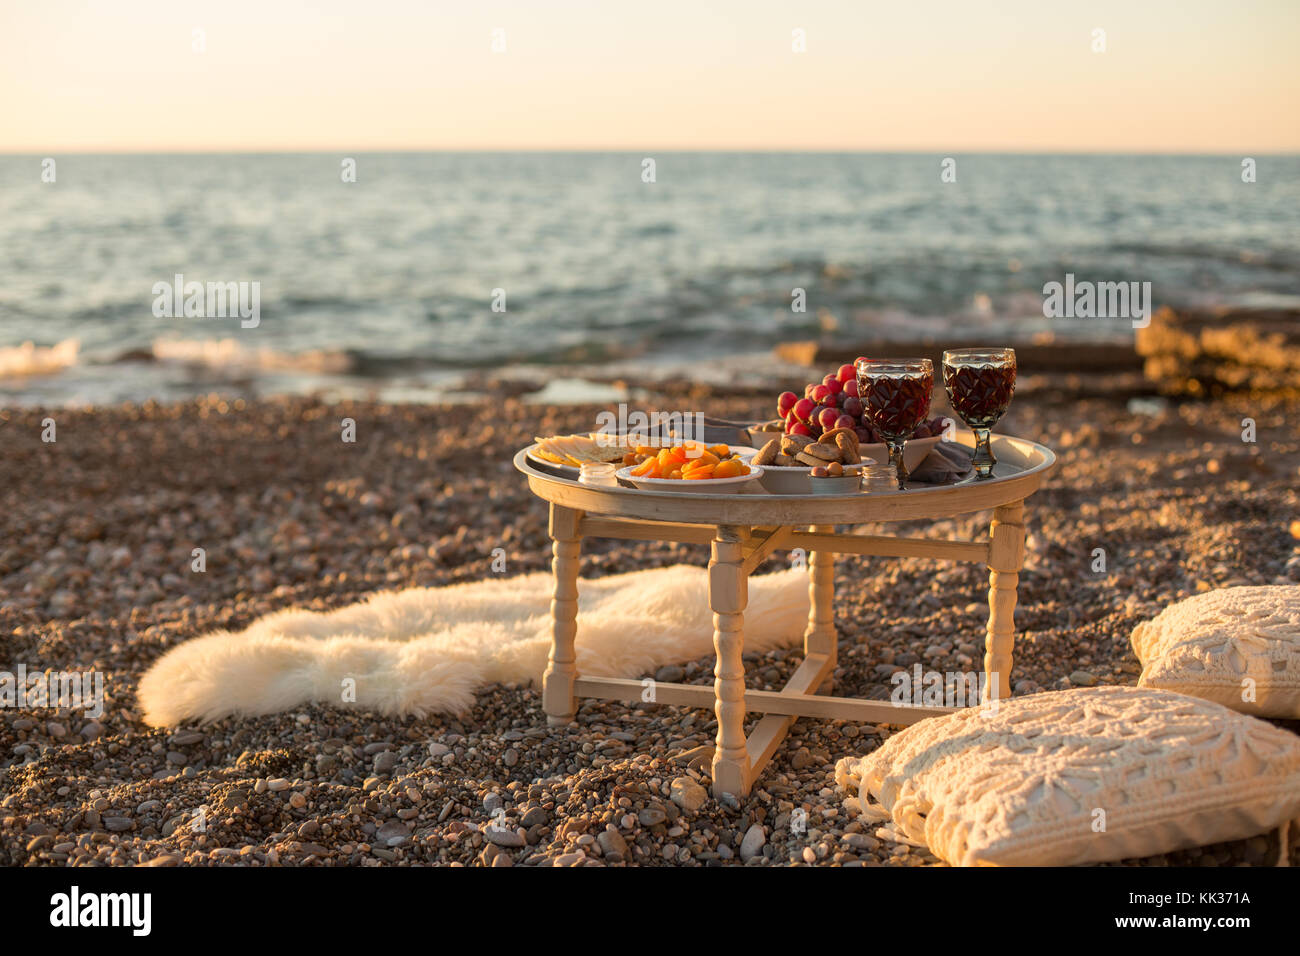 Romantic Outdoor Dinner With Wine And Cheese By Seaside. Two Glasses Of  Wine, Grapes, Dried Fruits And Cheese Placed On Small Round Table, With  White